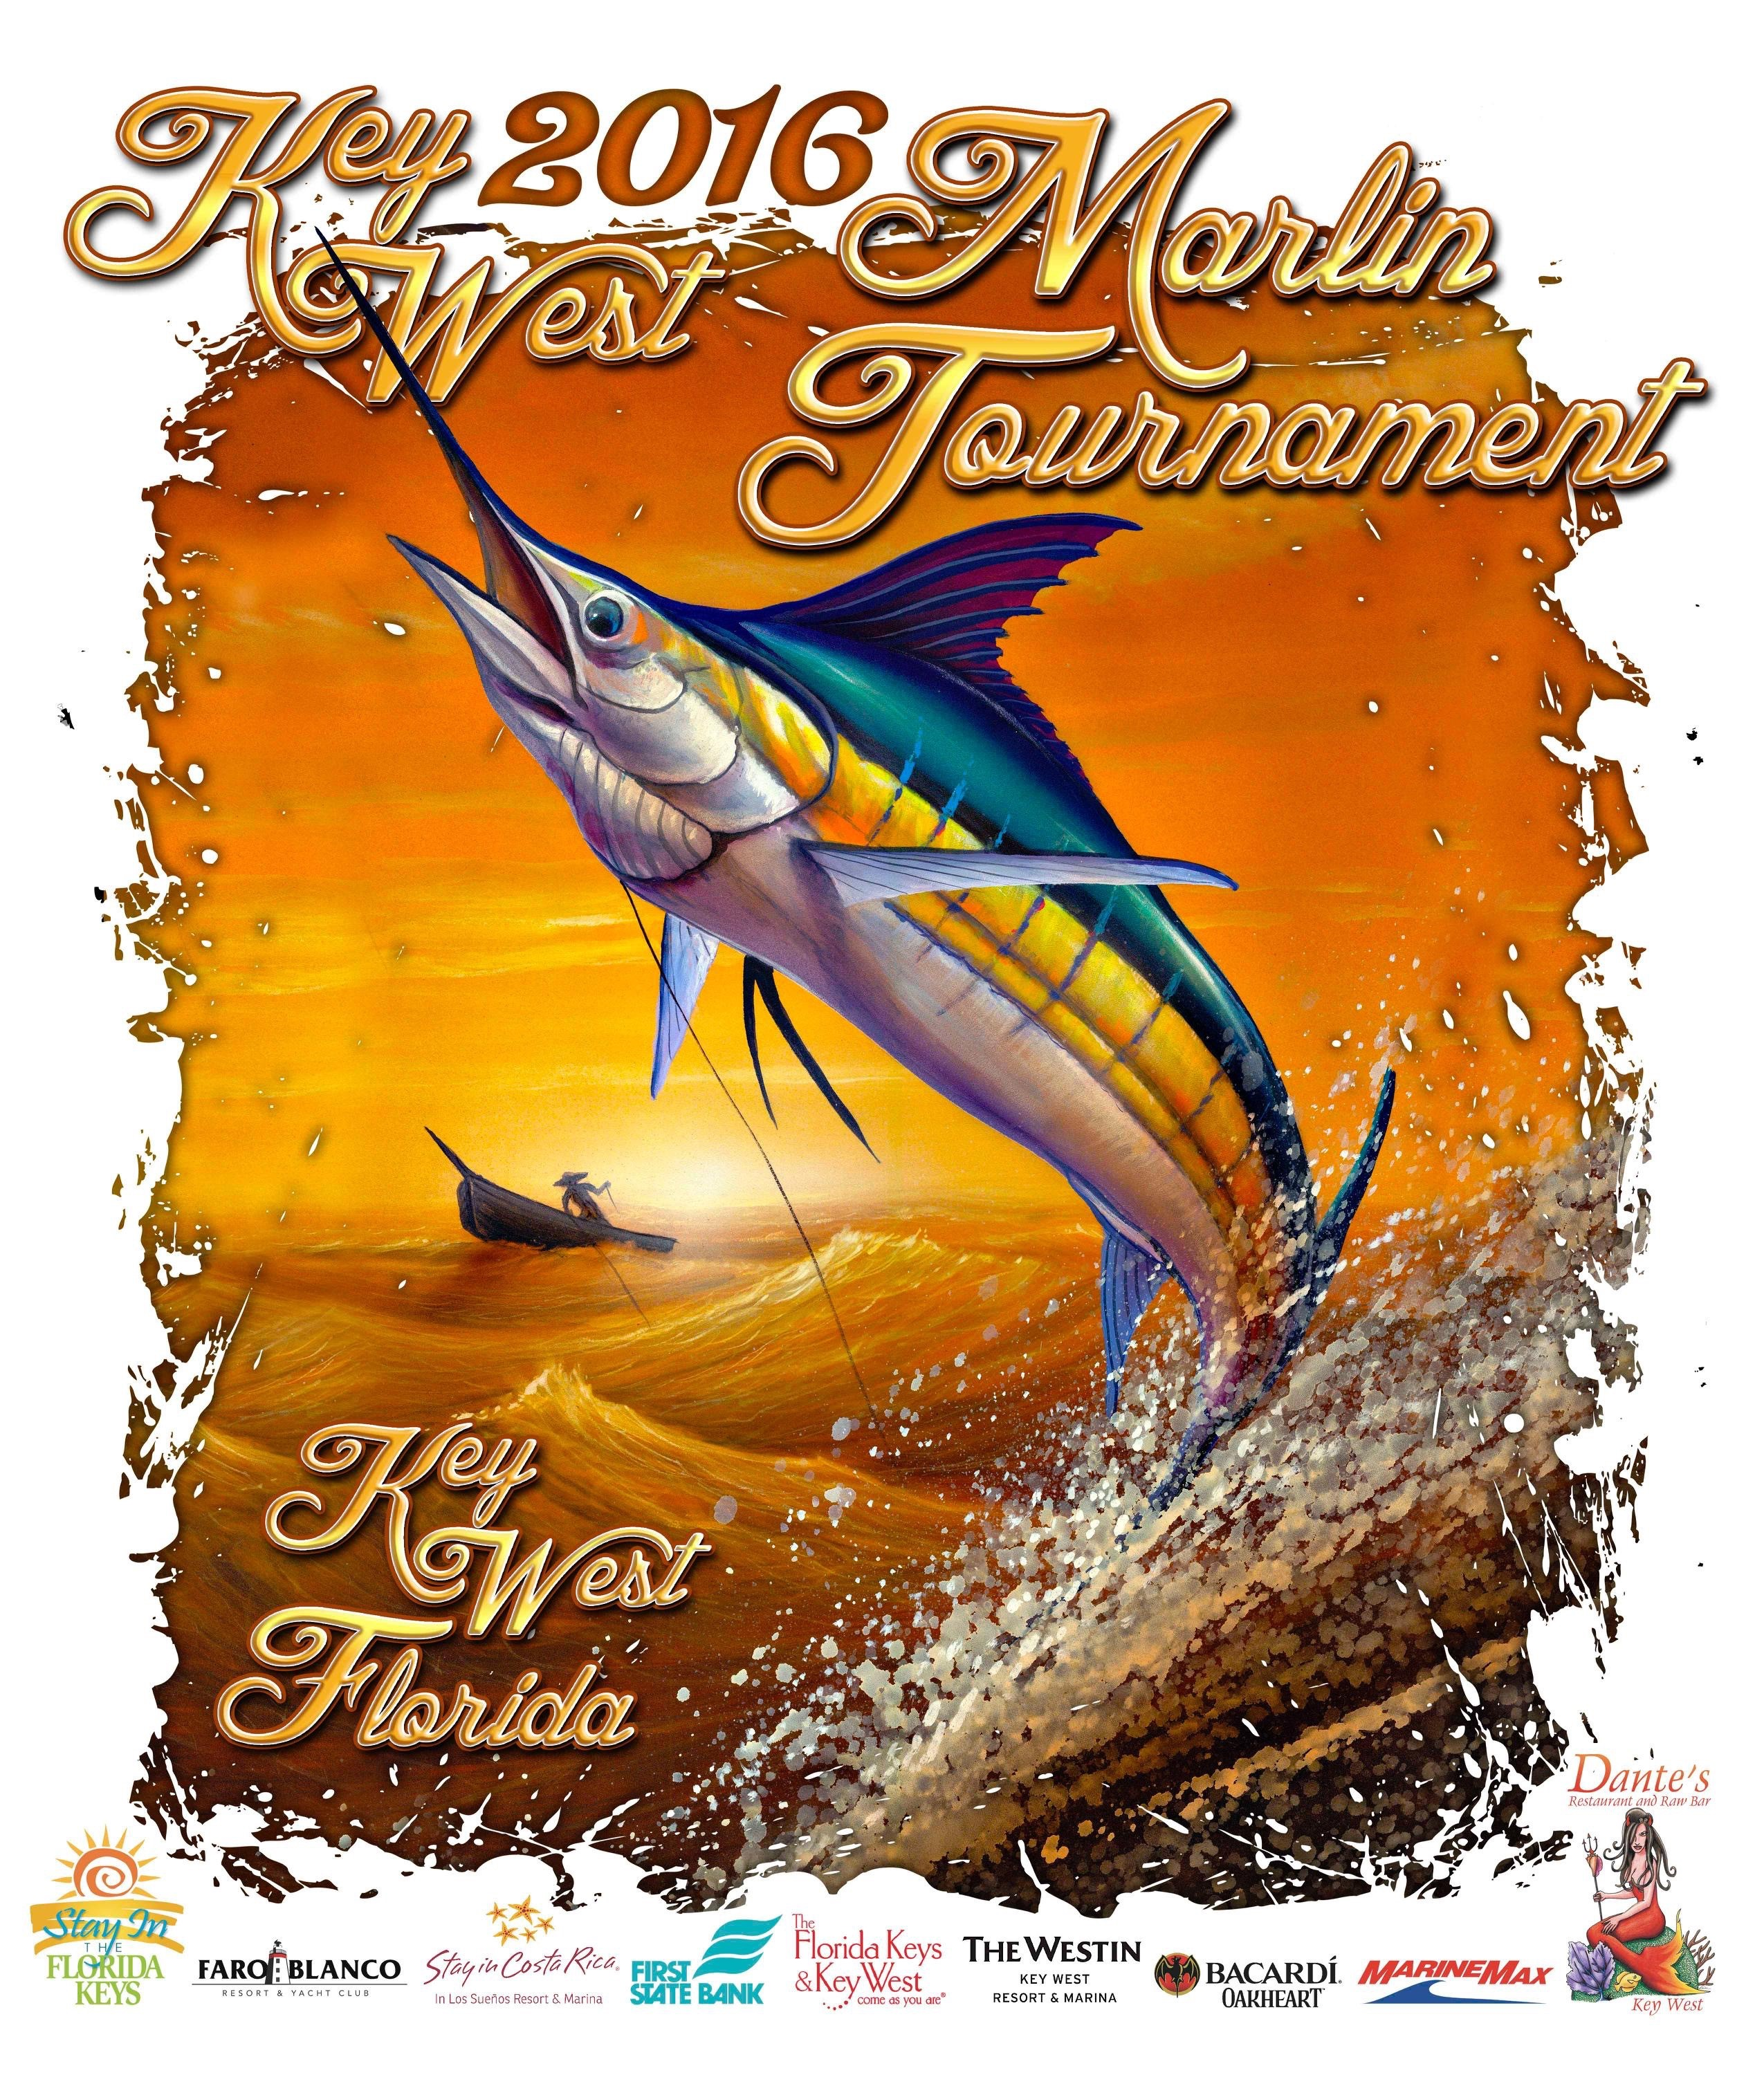 Key West Marlin Tournament 2016